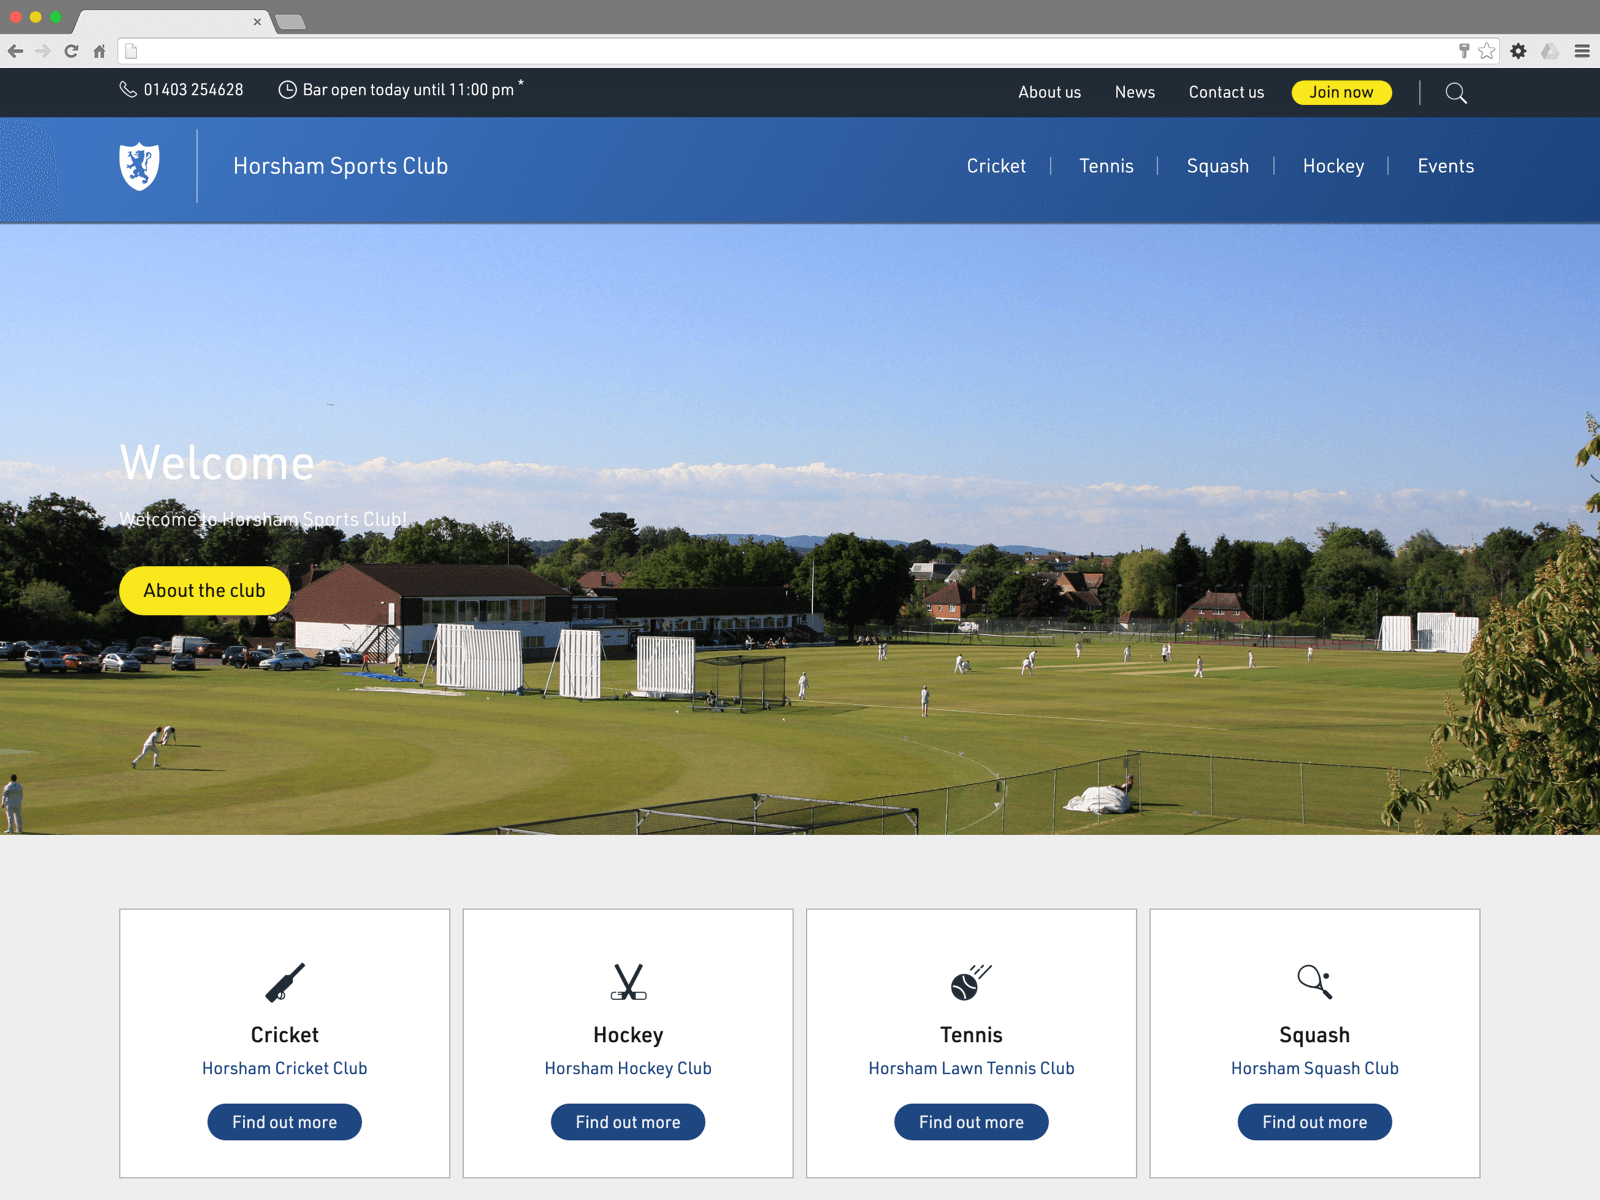 Horsham Sports Club website (Website on desktop)